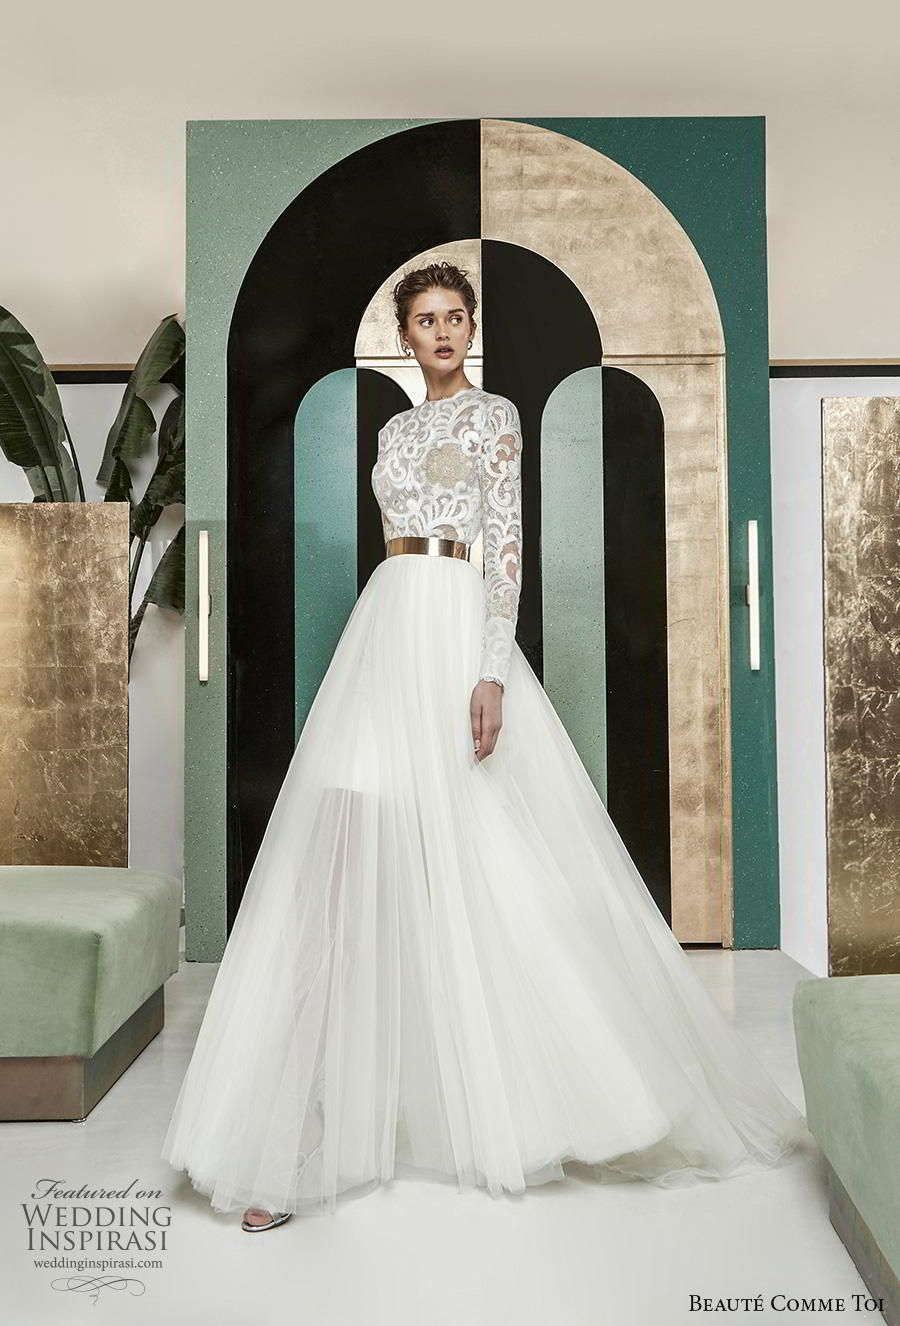 Breathtaking Modern Vintage Wedding Dresses By Beaute Comme Toi Fall Winter 2019 Bridal Collection Wedding Inspirasi Long Sleeve Wedding Gowns Wedding Dress Styles Wedding Dresses Vintage [ 1326 x 900 Pixel ]